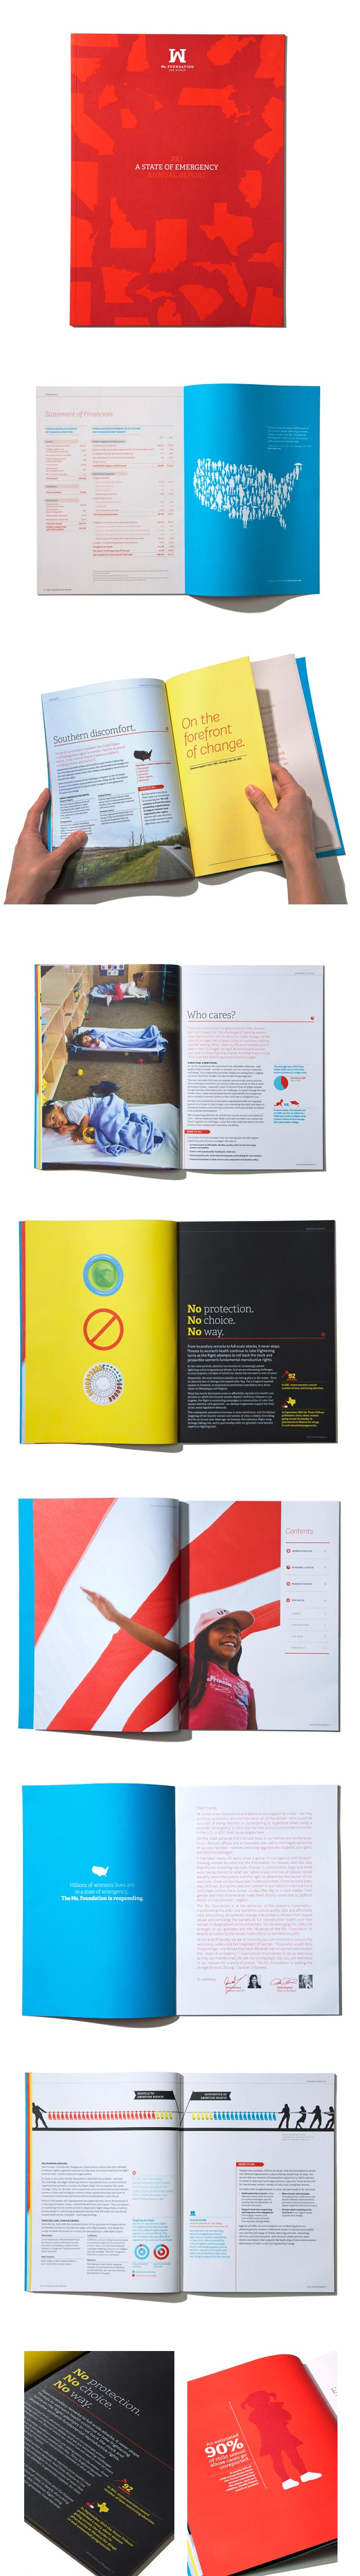 MS. FOUNDATION FOR WOMEN - 2012 ANNUAL REPORT